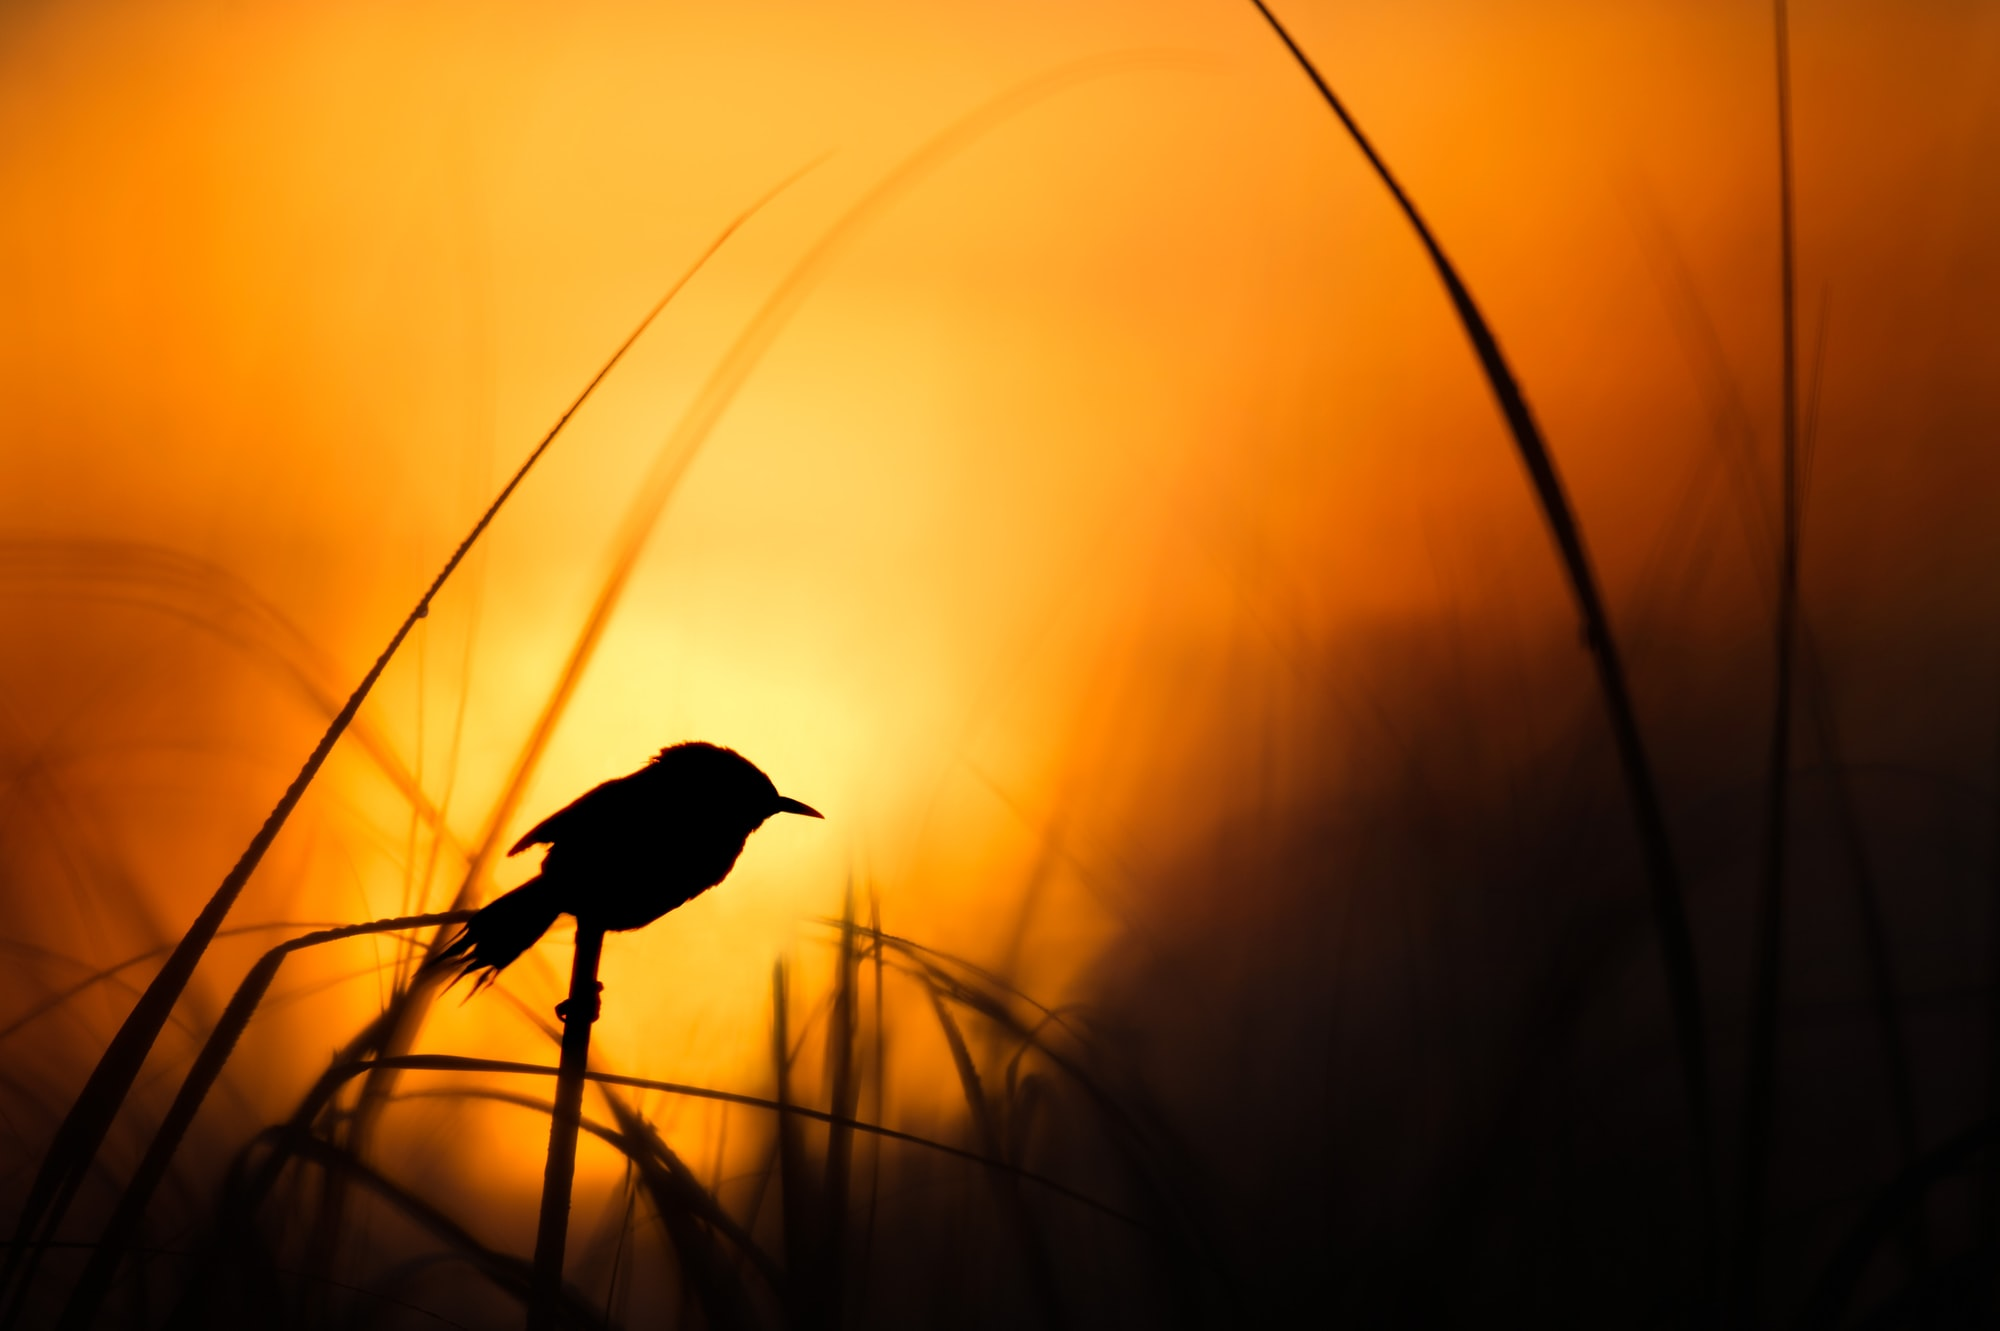 I had something like this in mind when I went to photograph the marsh songbirds on this morning.  This isn't exactly what I was trying for but I think it came out nice anyway.  This Marsh Wren perched just high enough for me to get a silhouette of it through all the marsh grasses. There was a small area of clouds right on the horizon so instead of seeing the sun itself the whole horizon was glowing yellow and orange.  I did like how some of the grasses went well above the bird to make it feel like you are in the marsh with it.